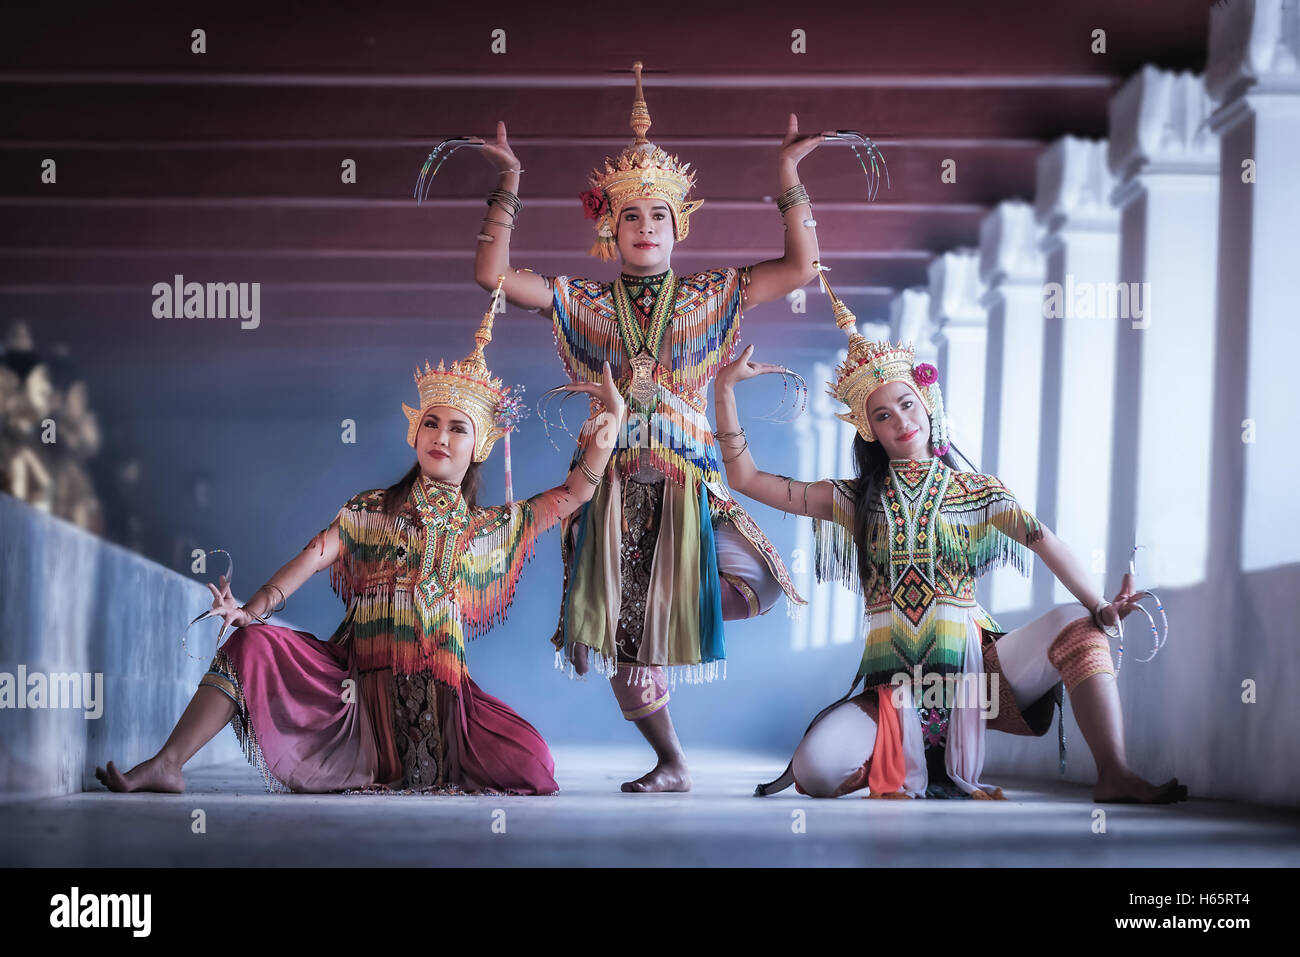 Manohra models : MANOHRA is folk dance in South of Thailand at Temple in Surat Thani Province, Thailand - Stock Image